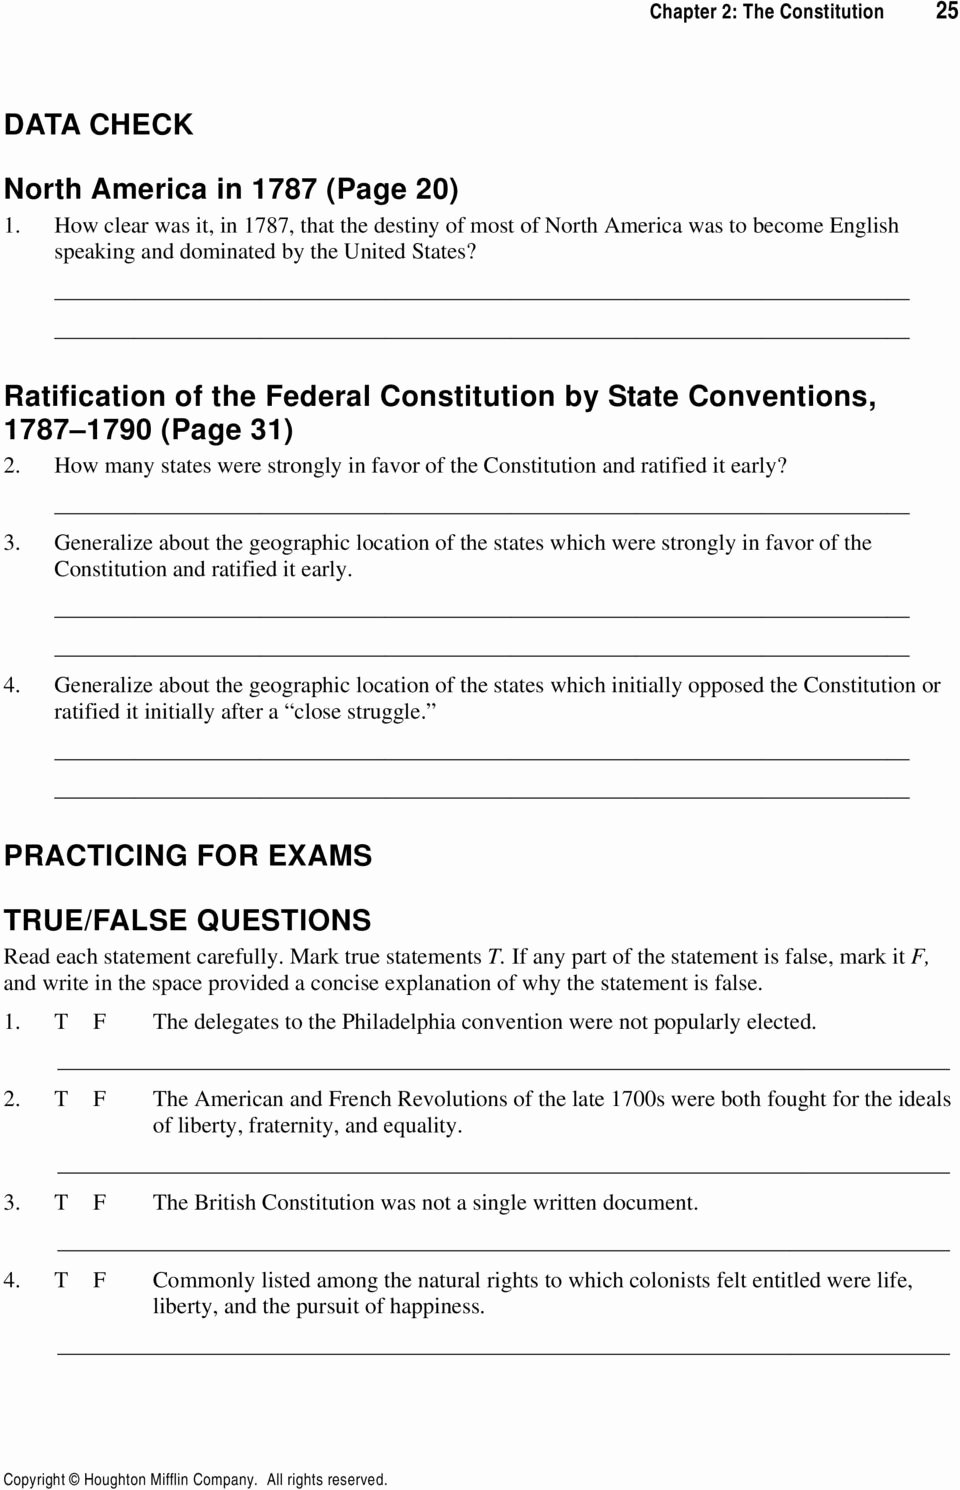 Ratifying the Constitution Worksheet Answers Printable Ratifying the Constitution Worksheet Nidecmege